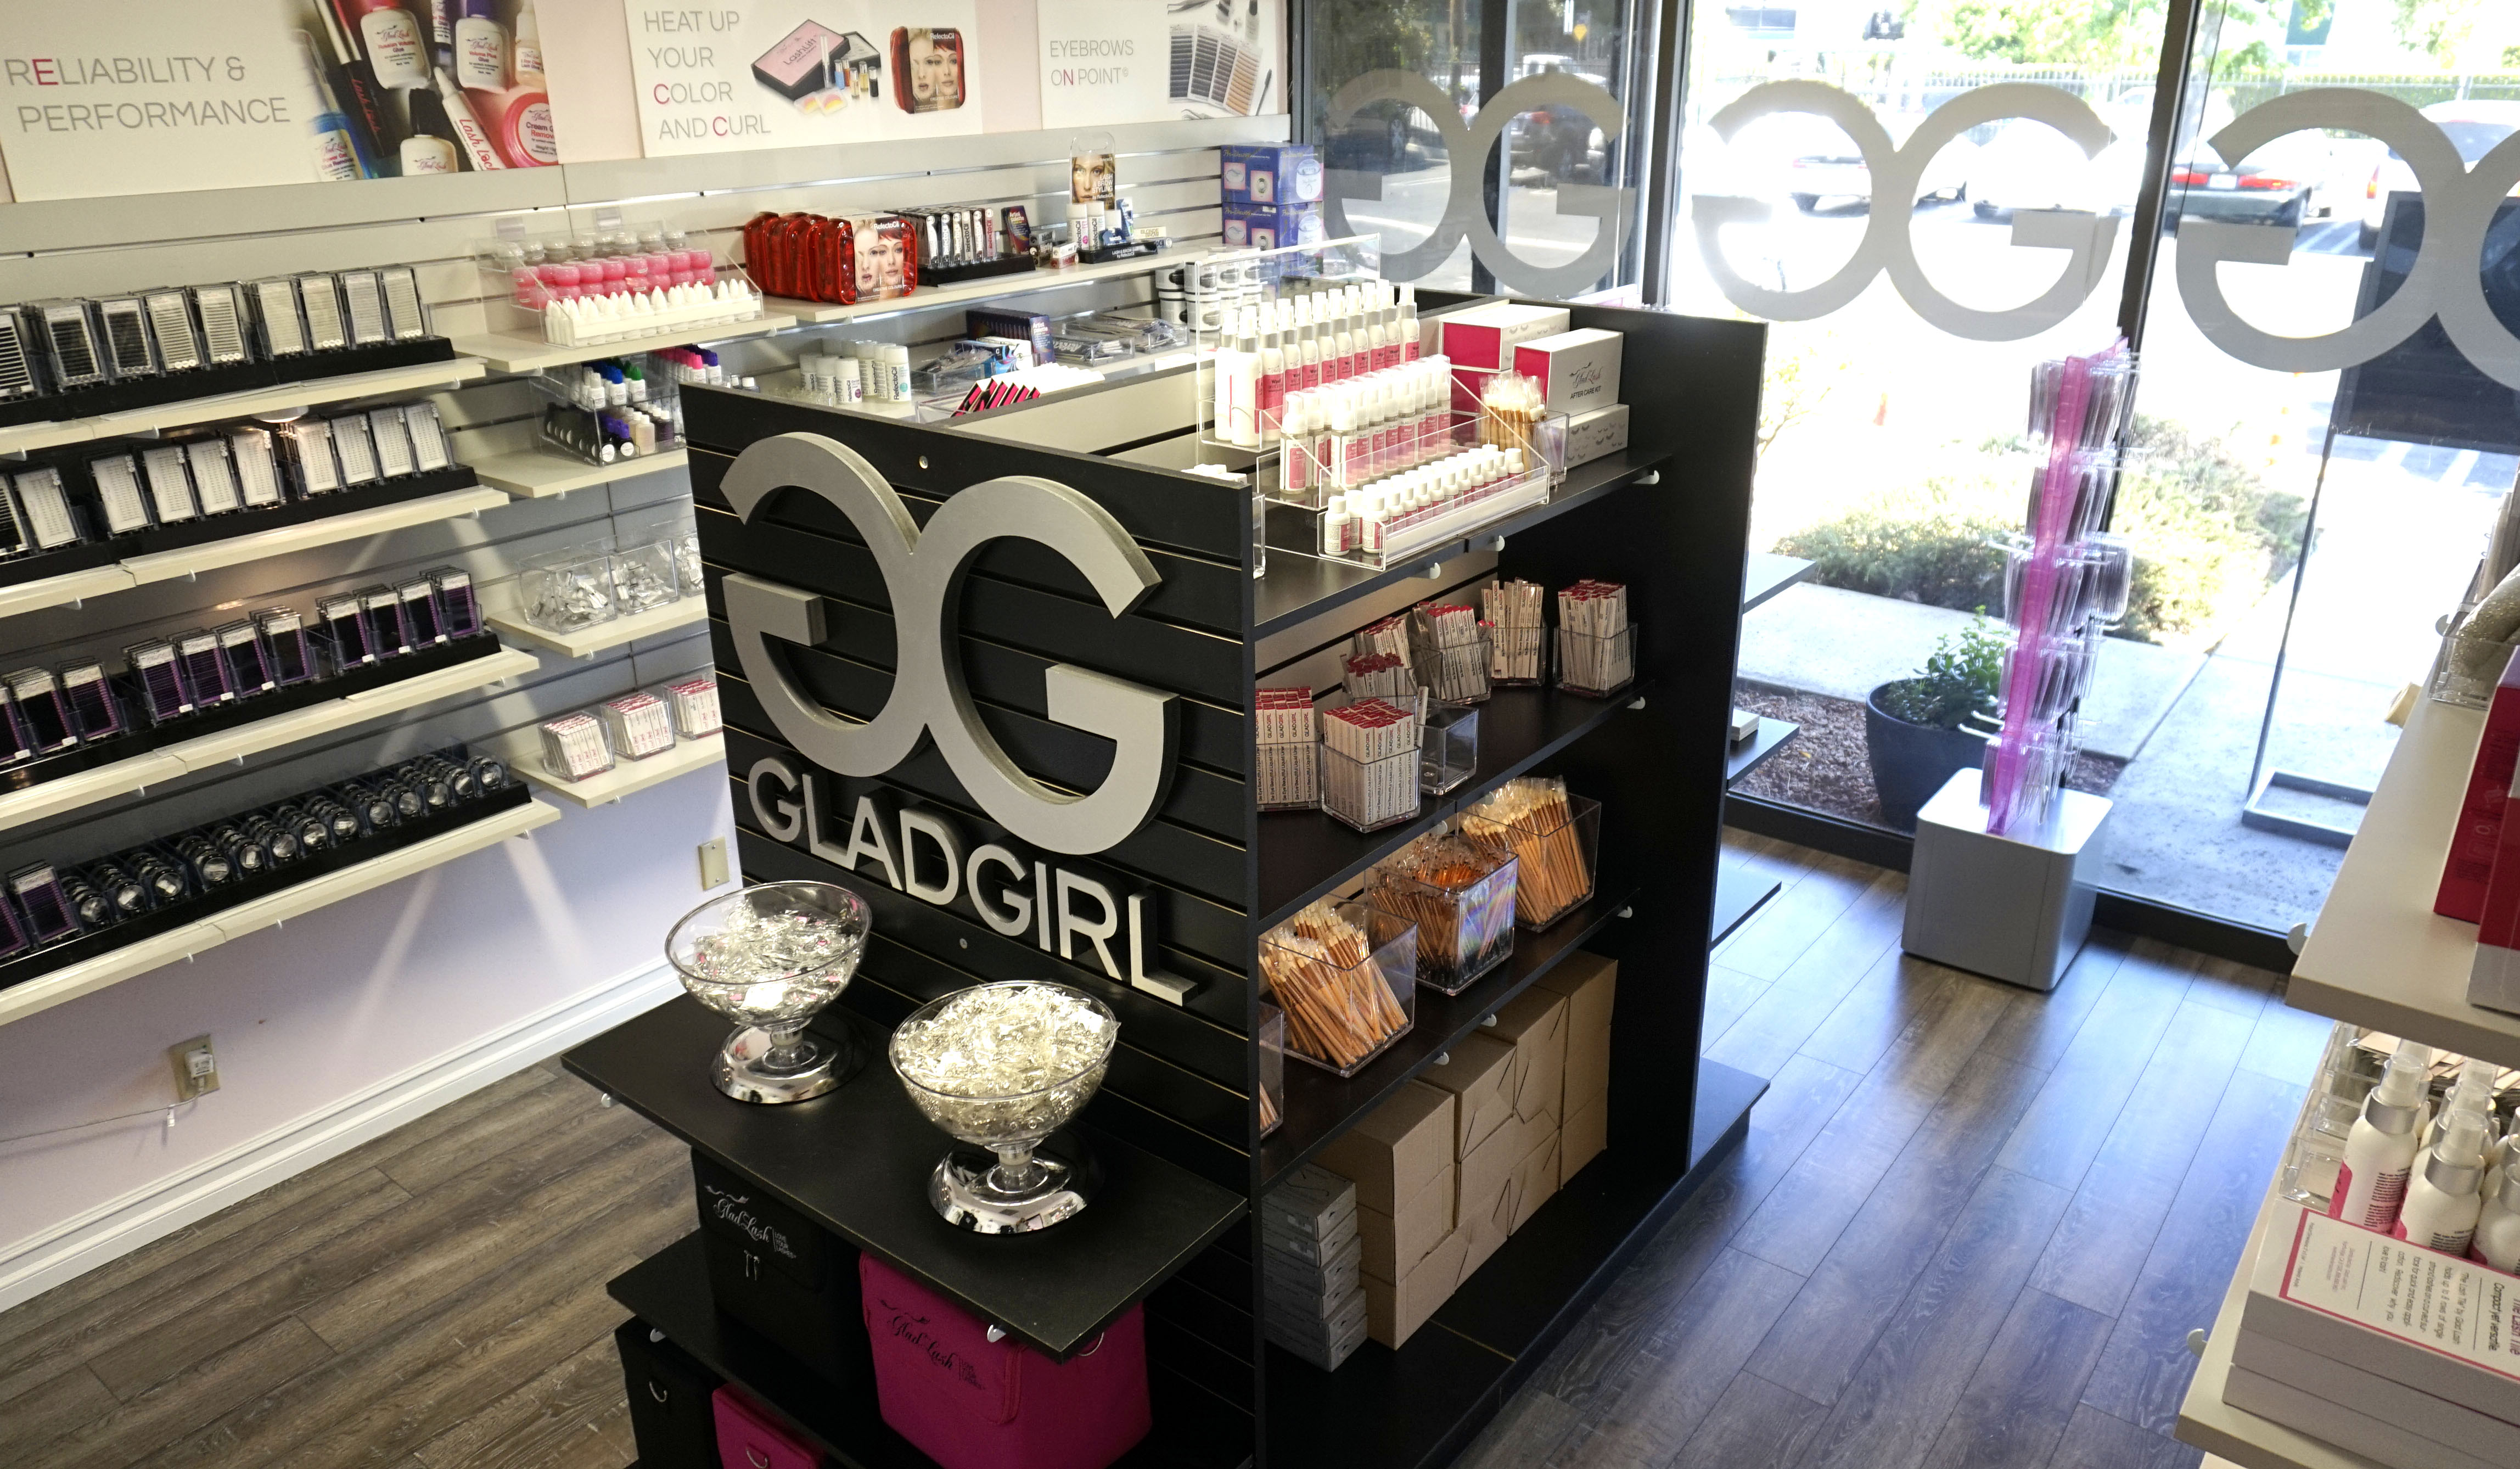 Glad Lash Opens its First-Ever Retail Establishment in Southern California